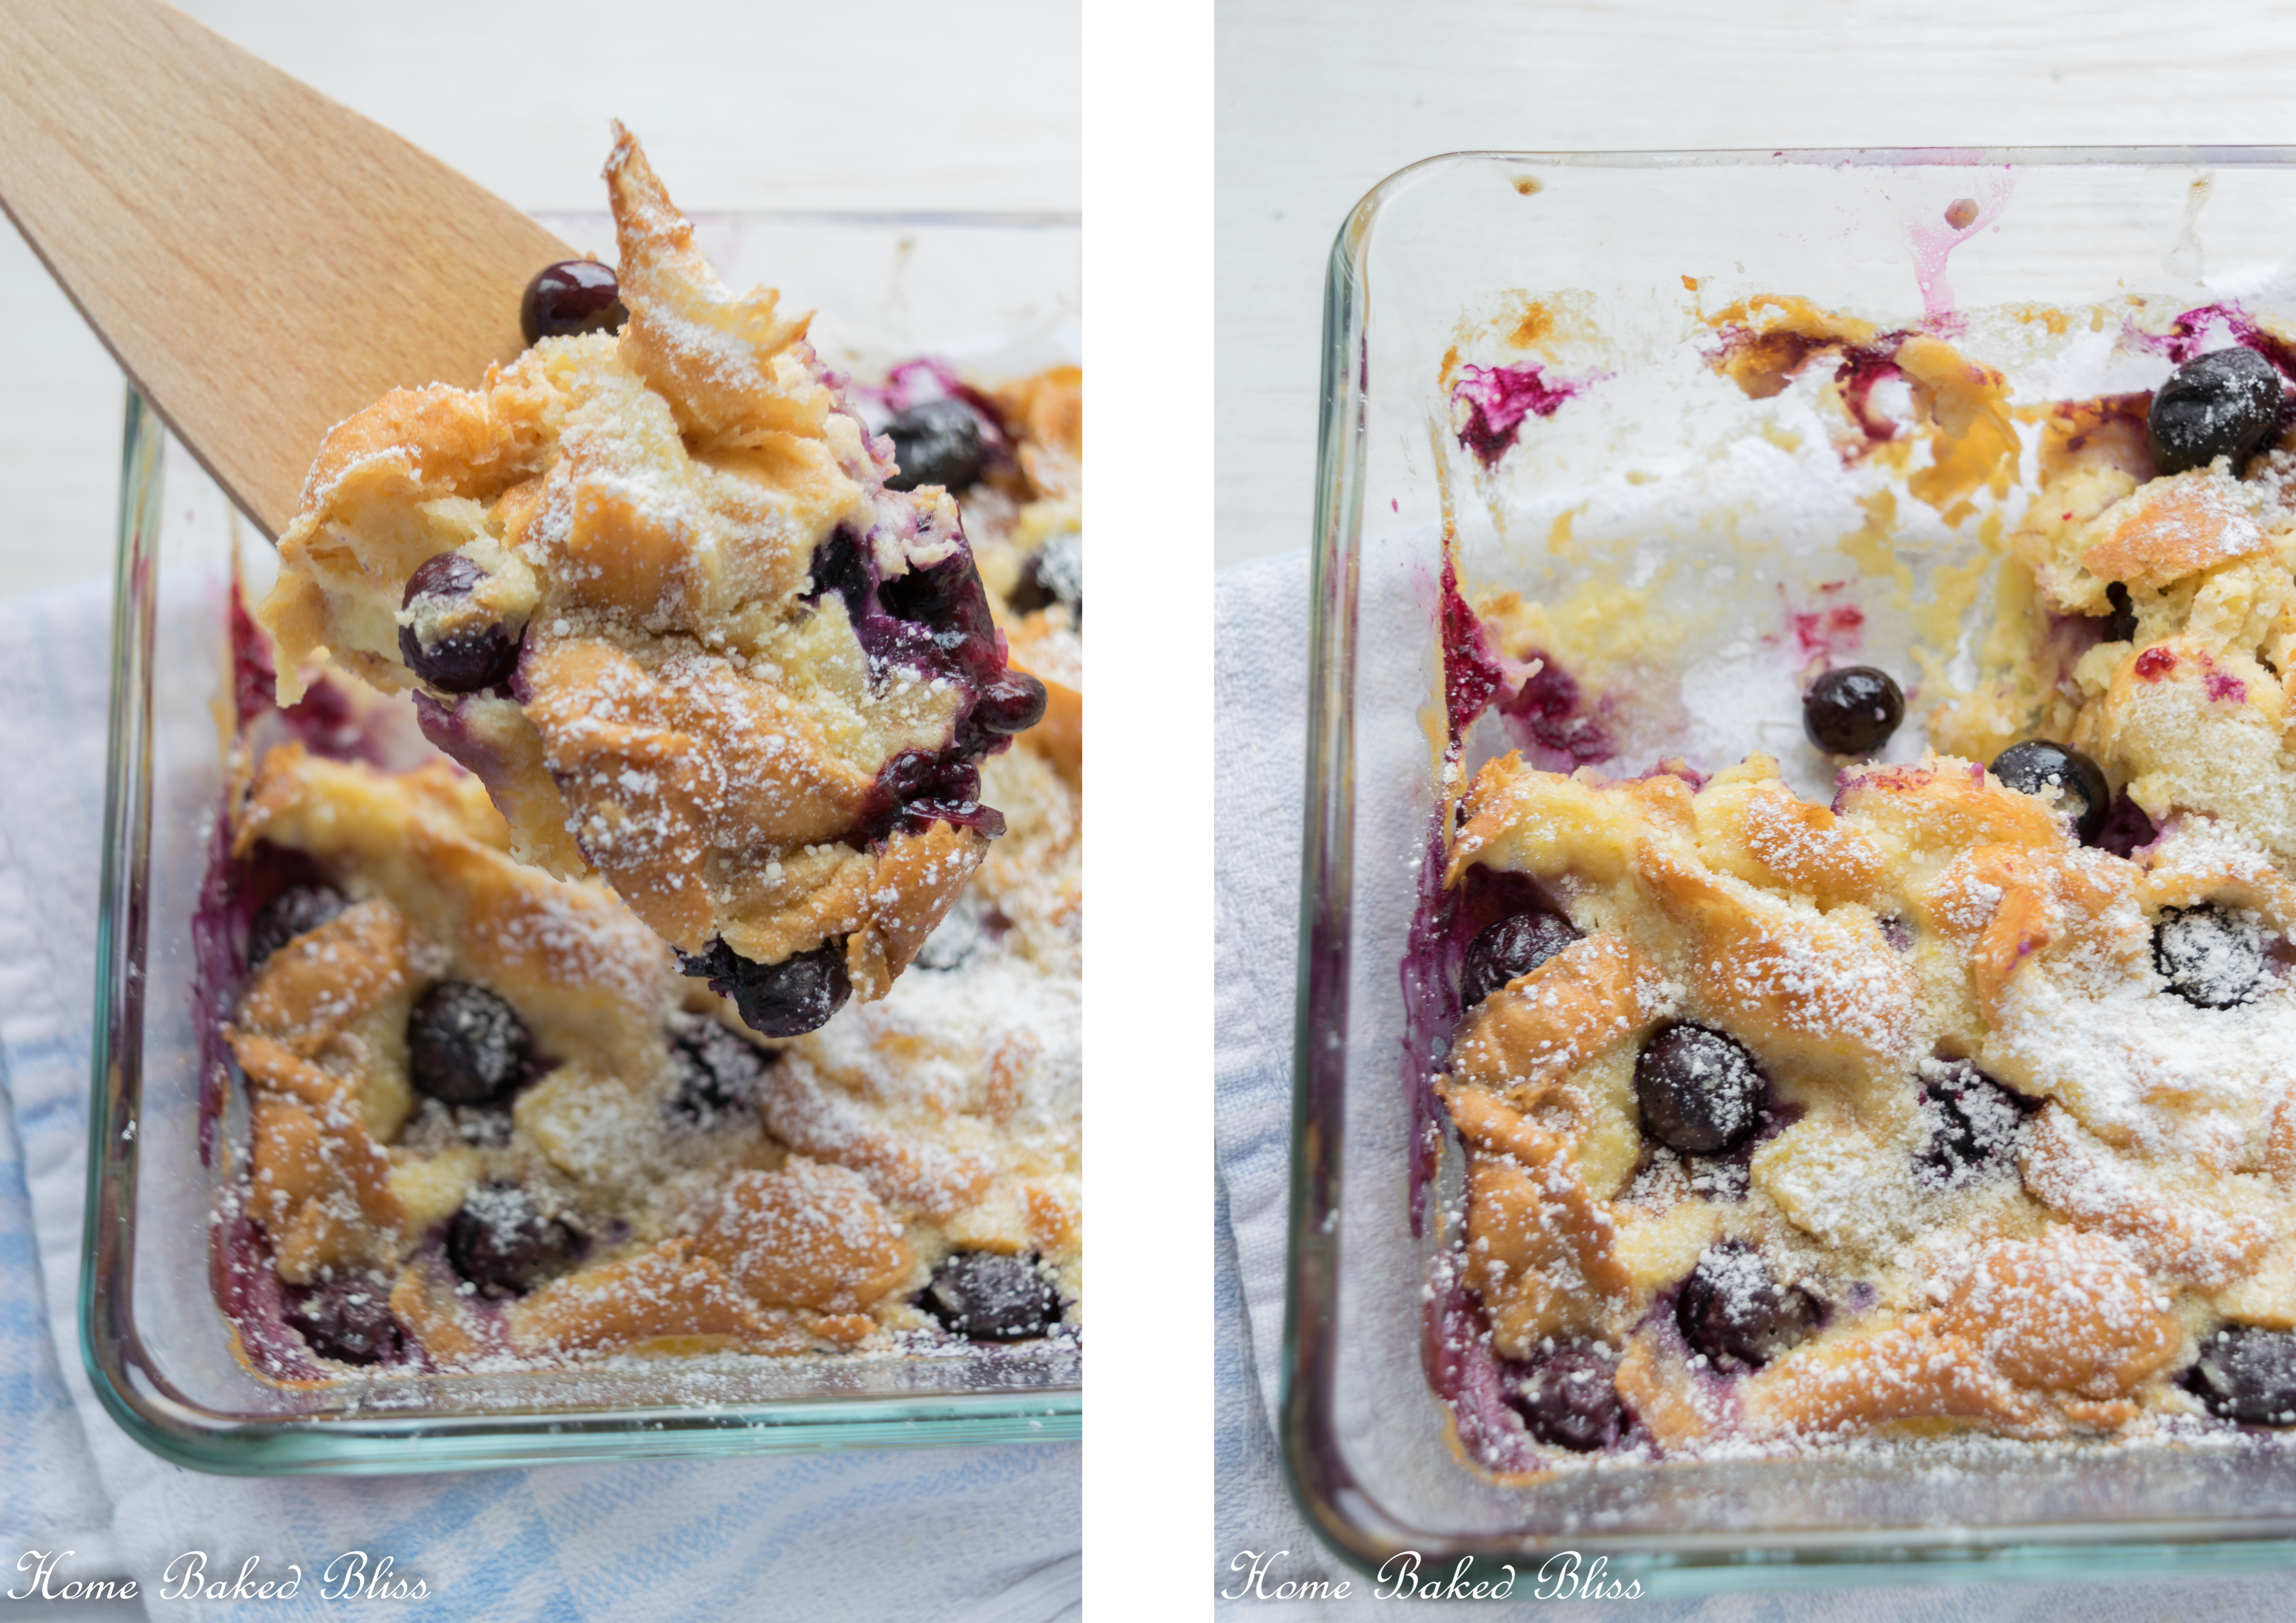 Blueberry lemon breakfast casserole in a glass pan.